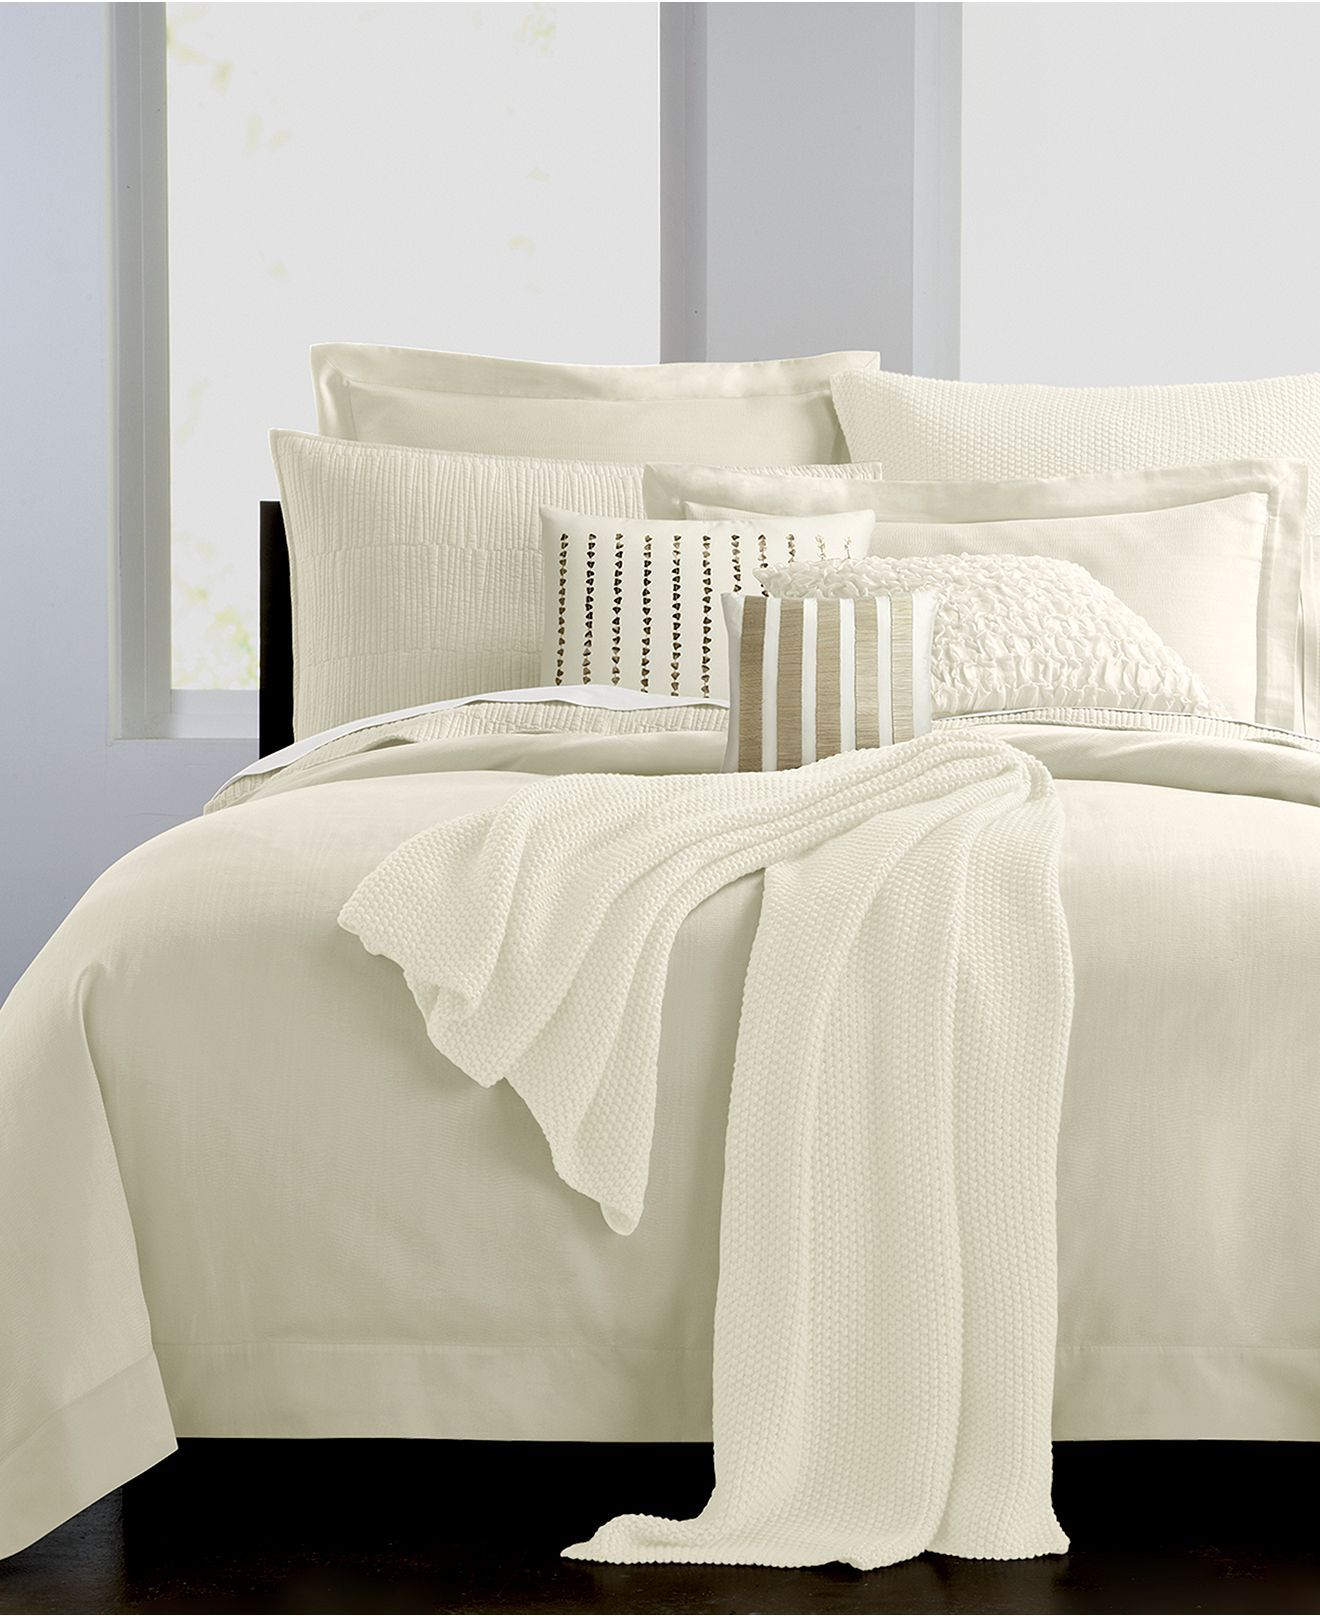 Master Bedroom Bedding Collections Donna Karan Essentials Bedding Urban Oasis Ivory Collection